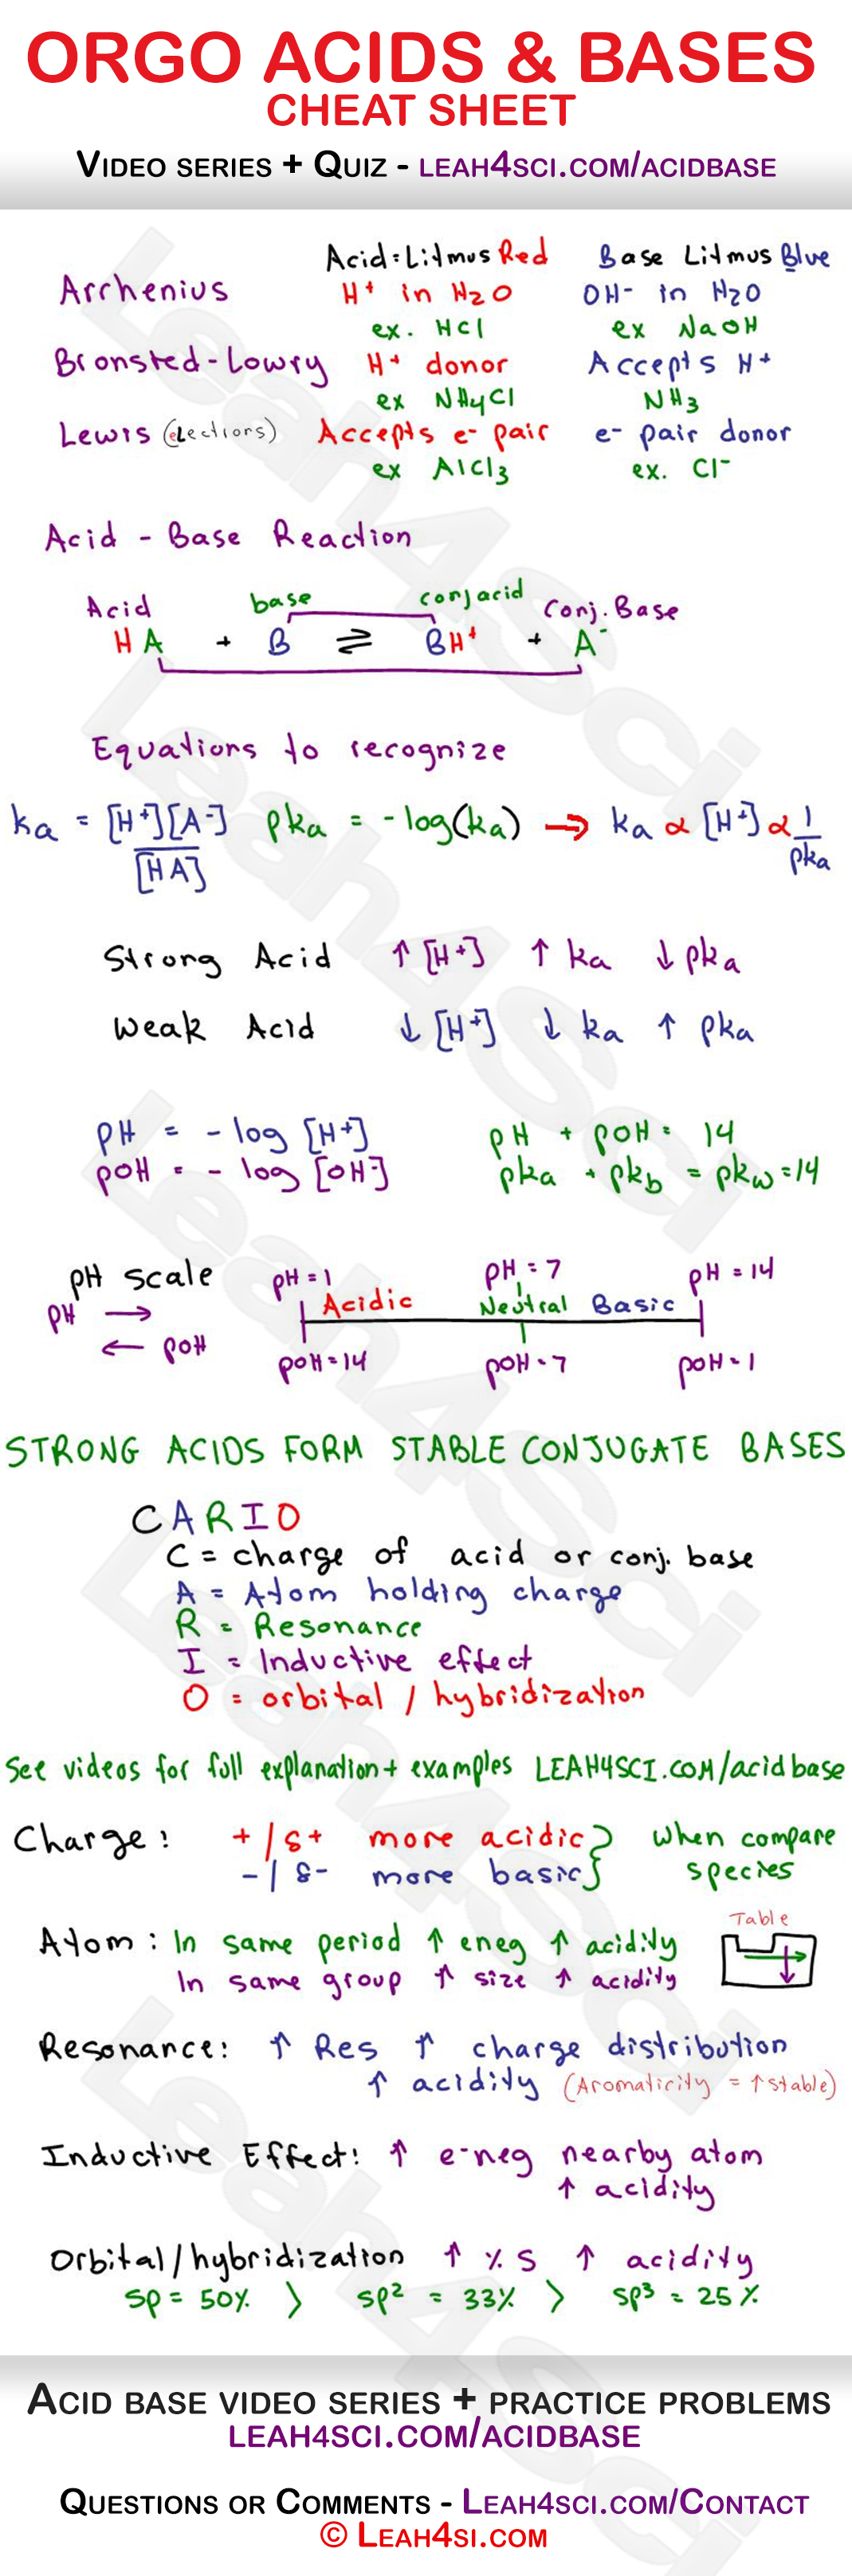 Acid Base Ph And Pka Calculations In Mcat Chemistry